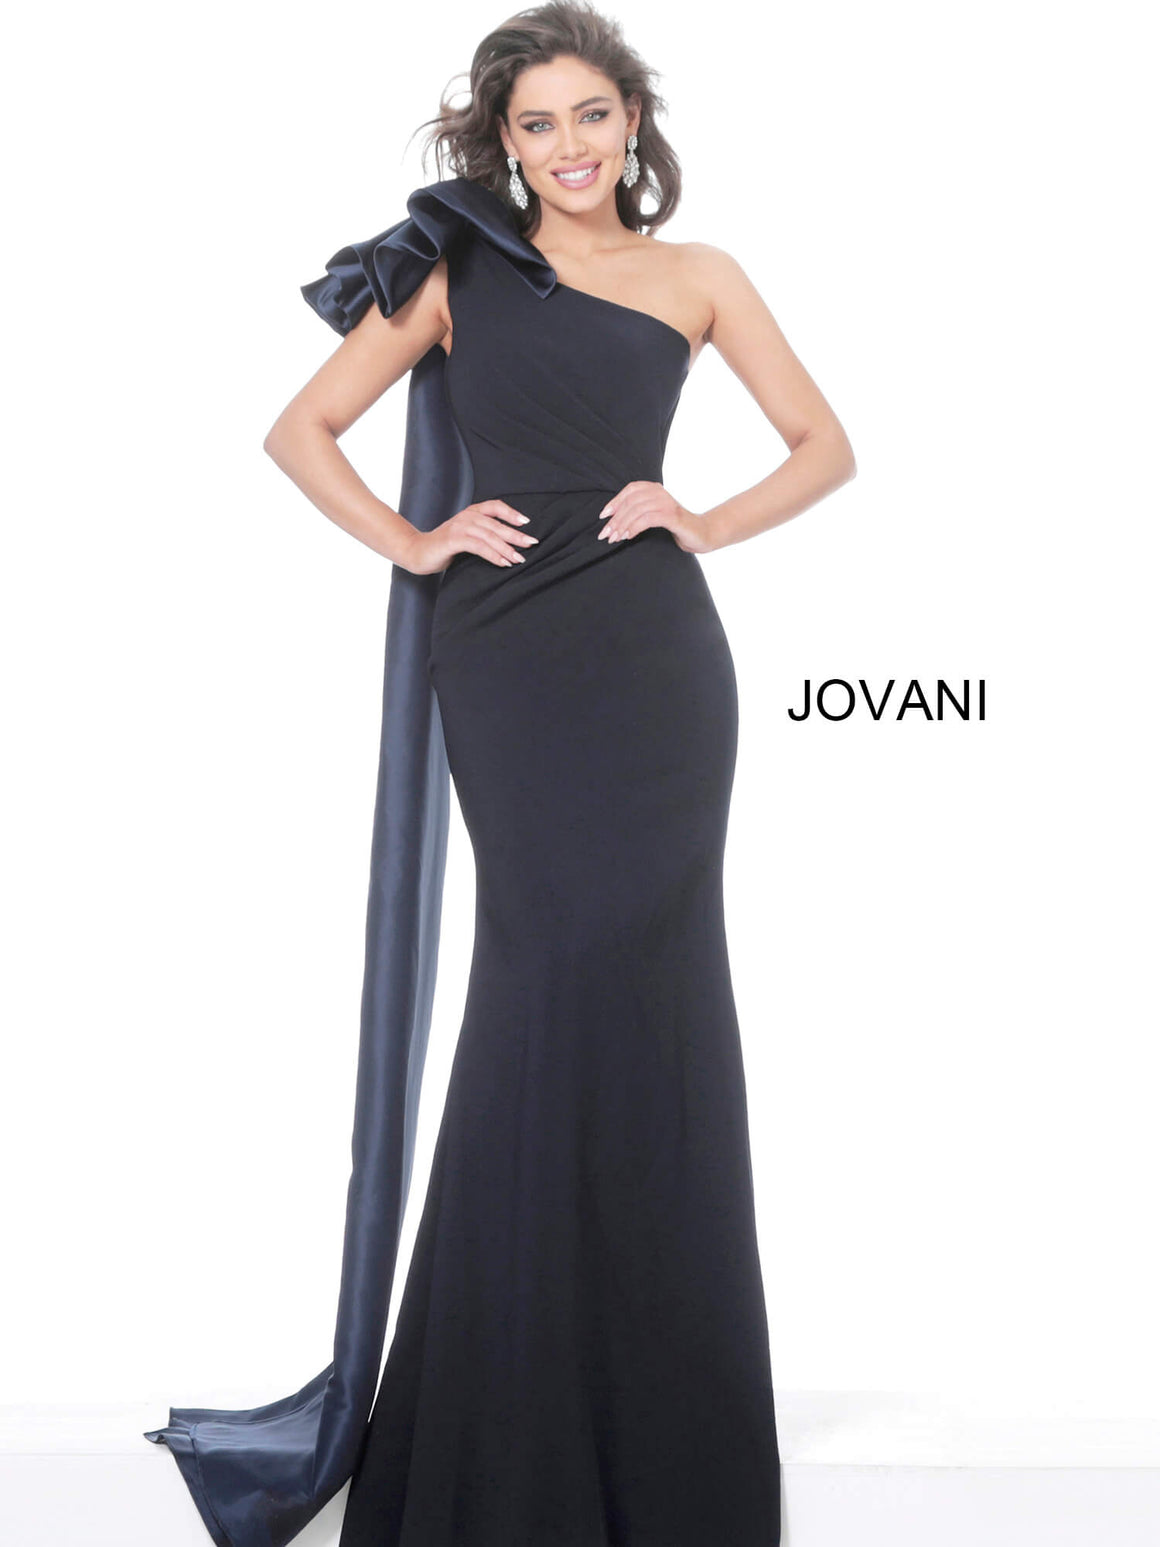 Jovani 1008 One Shoulder Ruched Waist Evening Dress